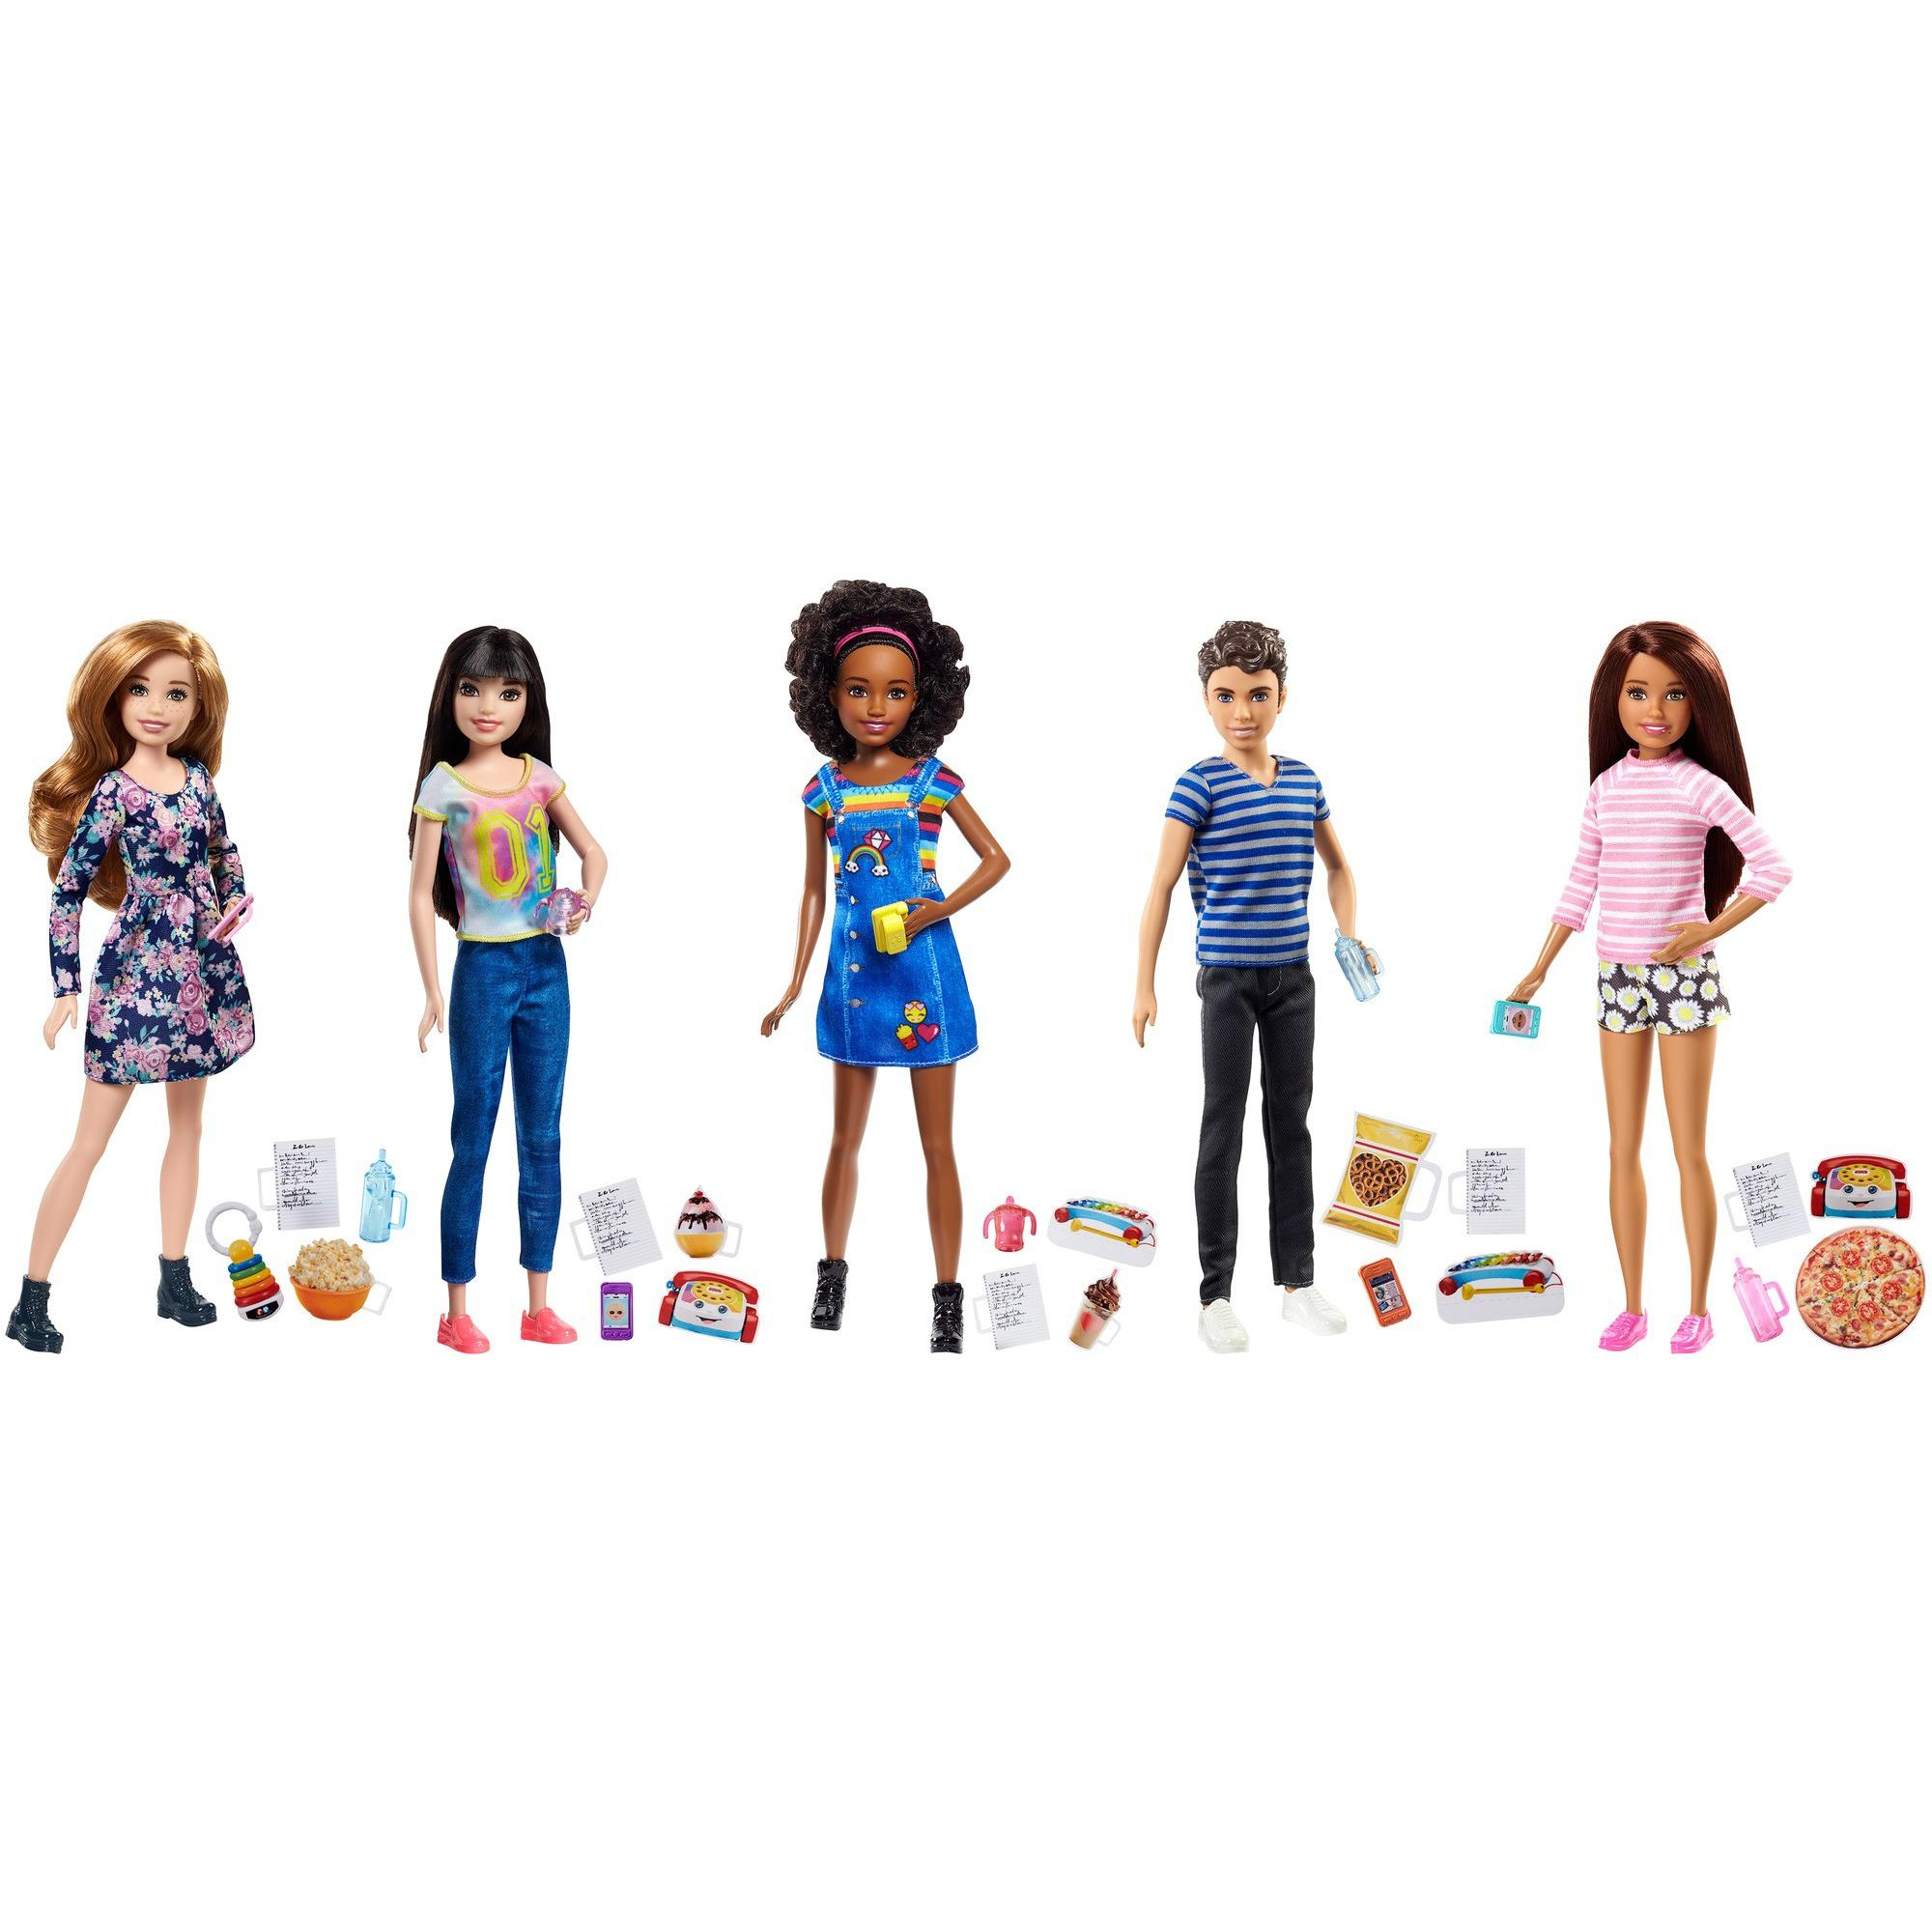 Barbie Skipper Babysitters Inc. Doll And Accessory (Styles May Vary)